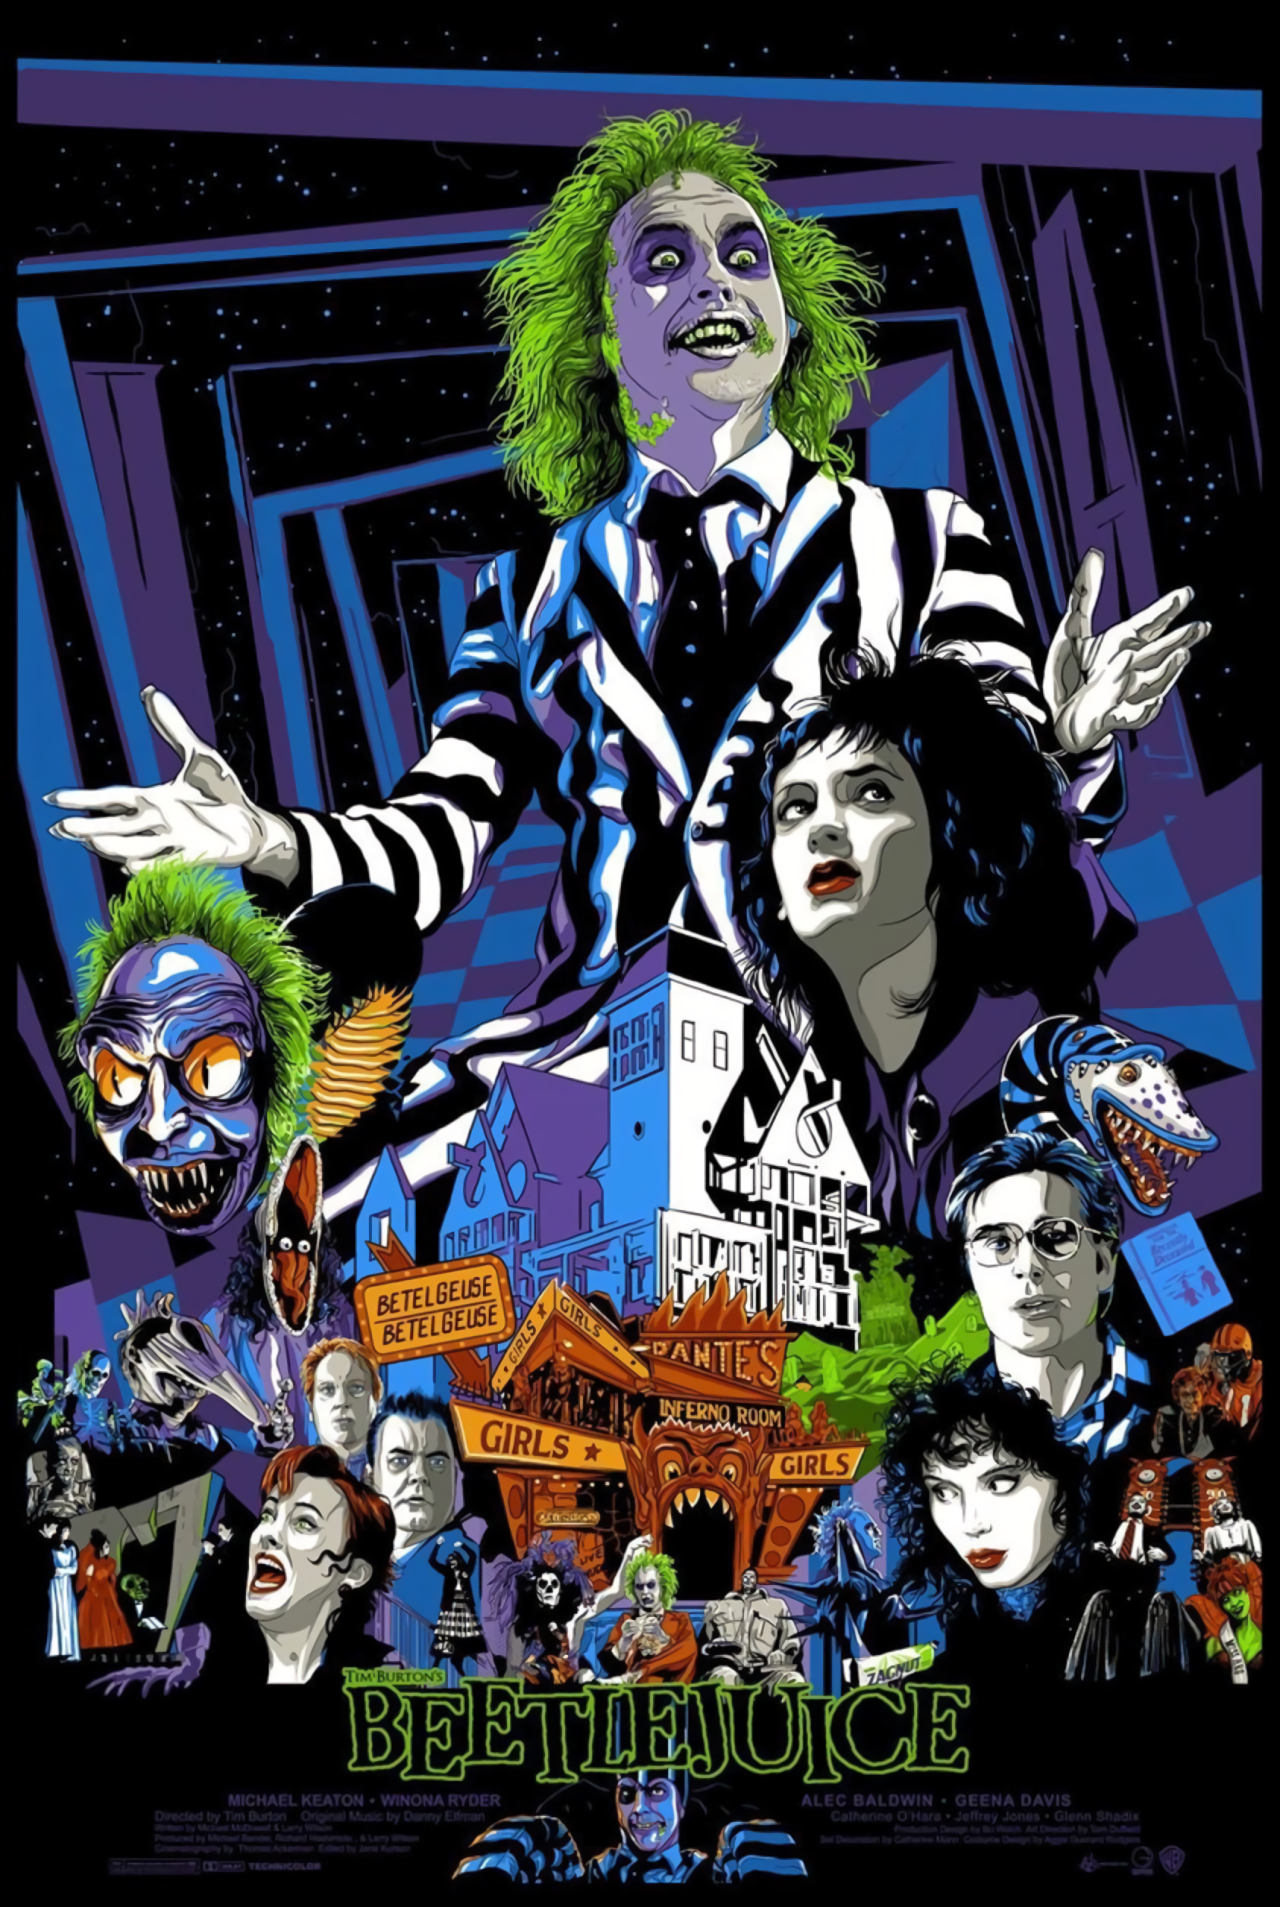 Beetlejuice 1988 Hd Wallpaper From Gallsource Com Beetlejuice Movie Movie Poster Art Movie Art